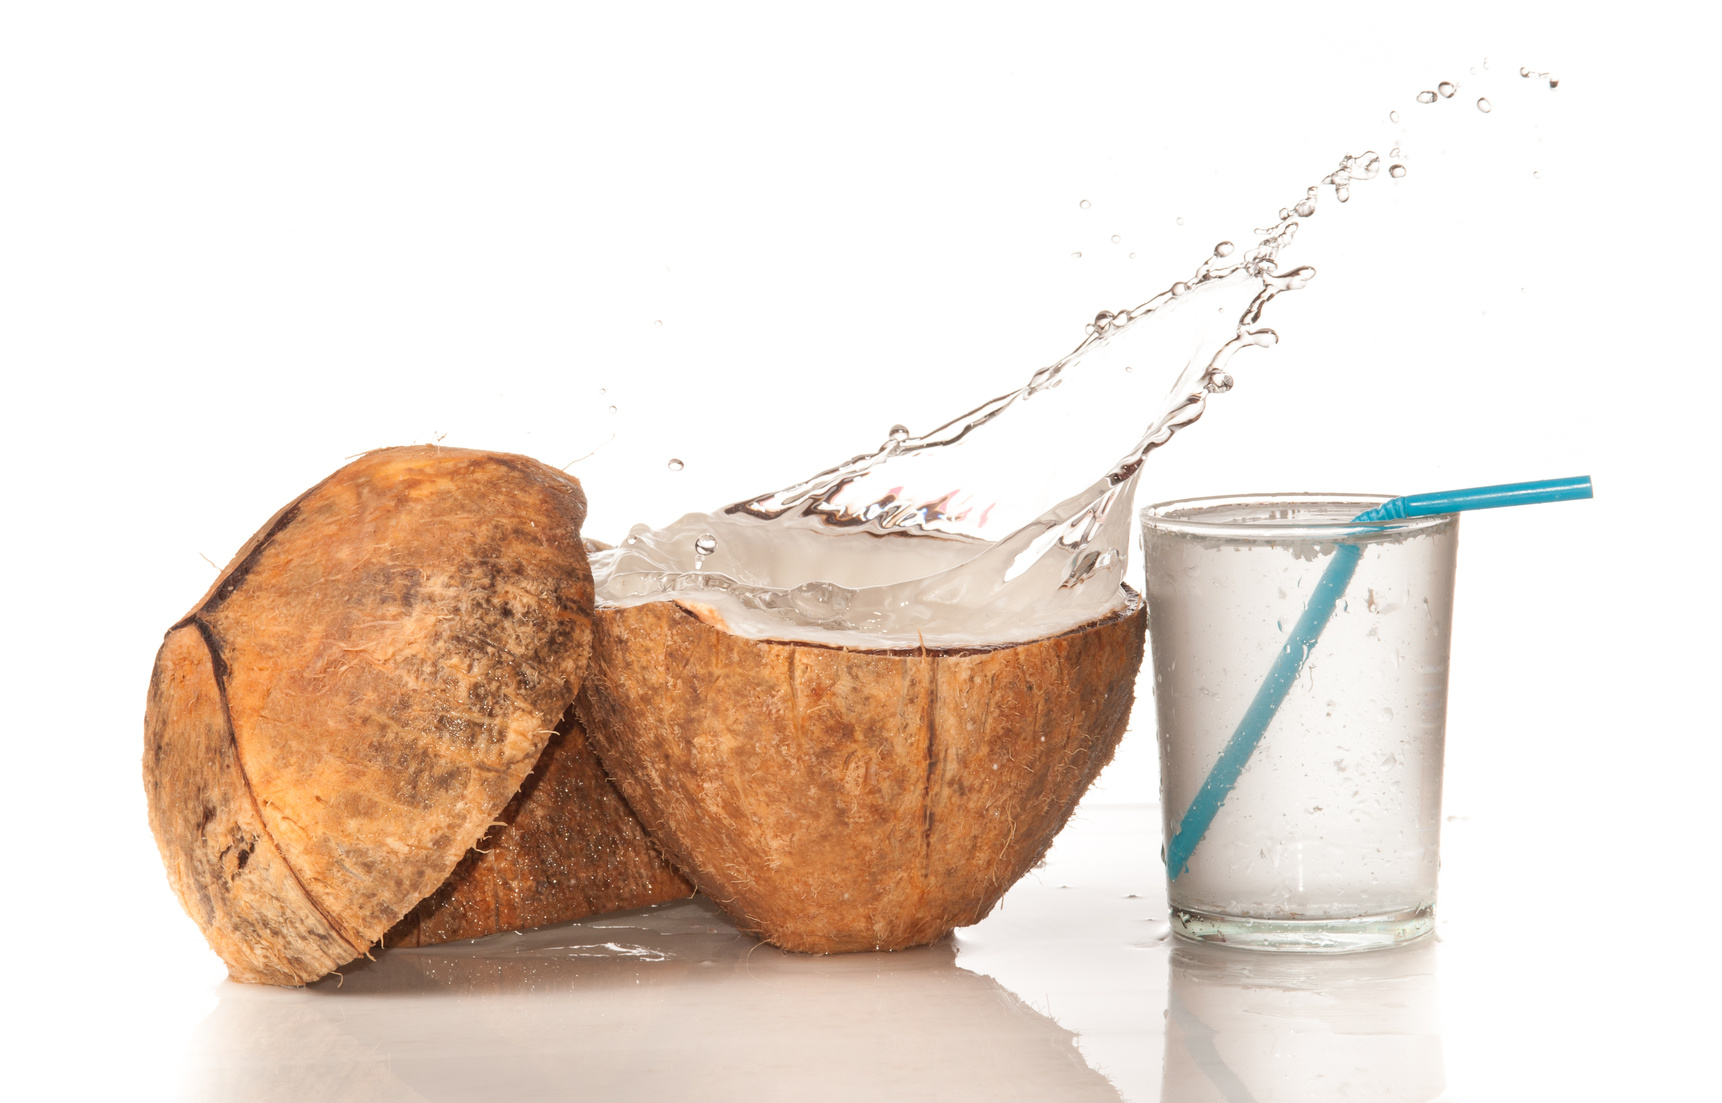 http://universityhealthnews.com/daily/nutrition/3-fabulous-coconut-water-health-benefits/